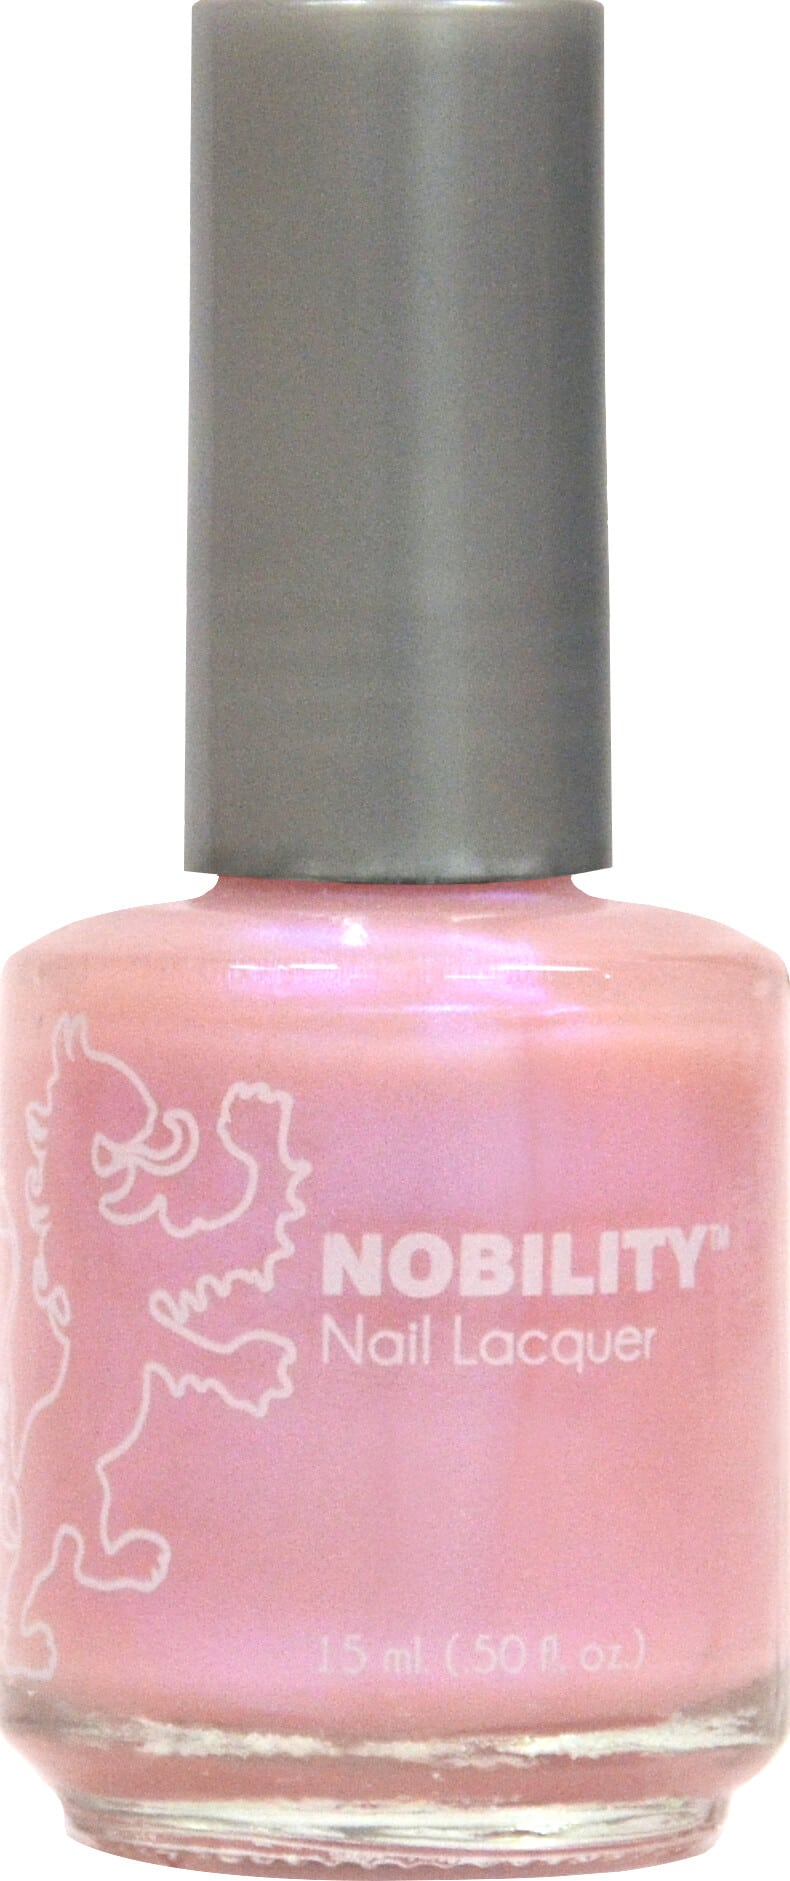 Nobility Nail Lacquer